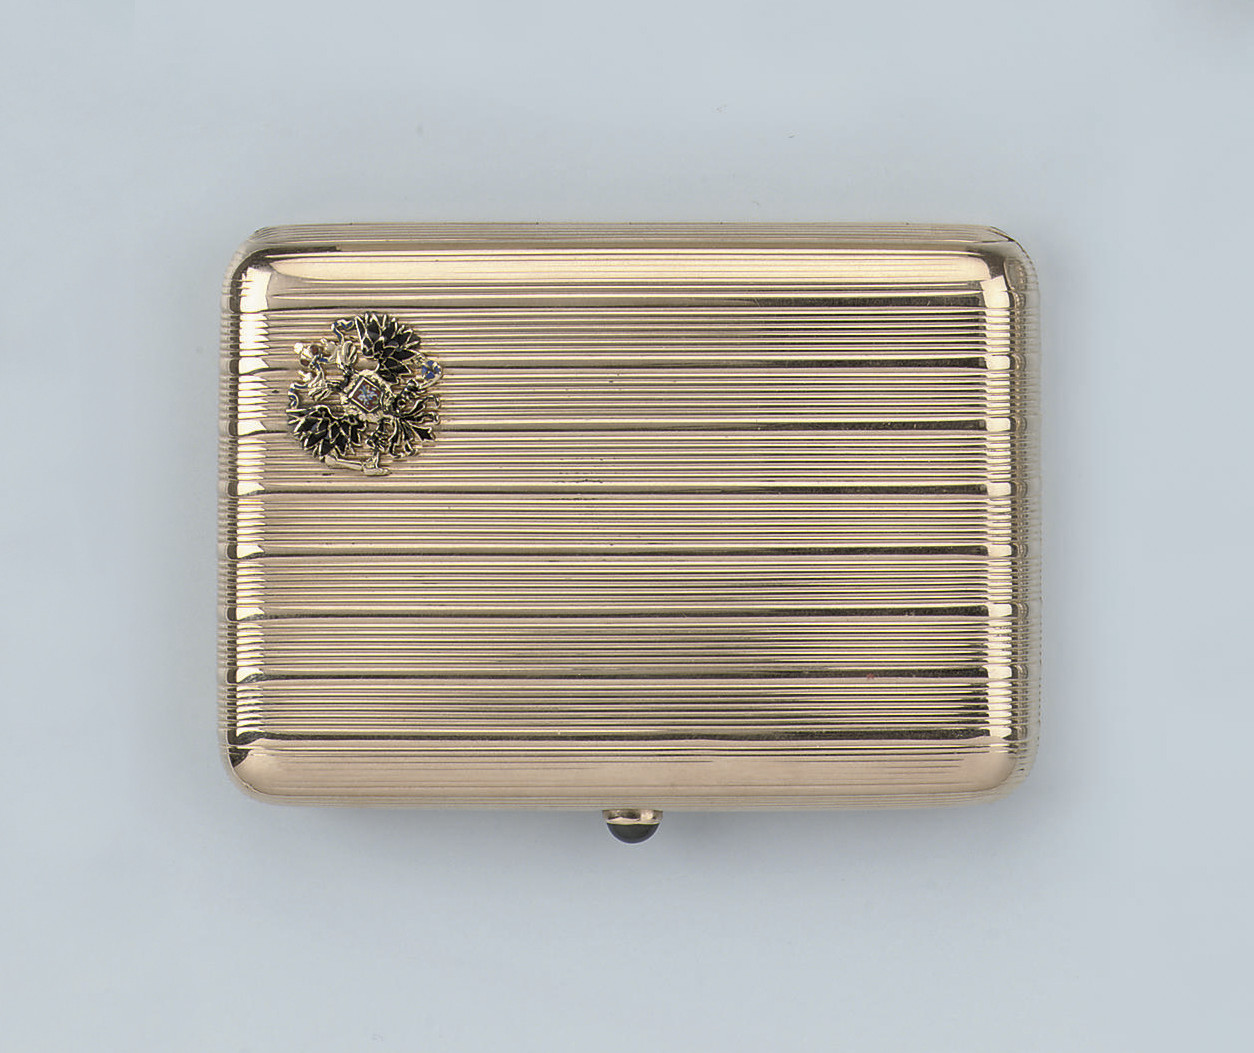 A RUSSIAN CIGARETTE CASE